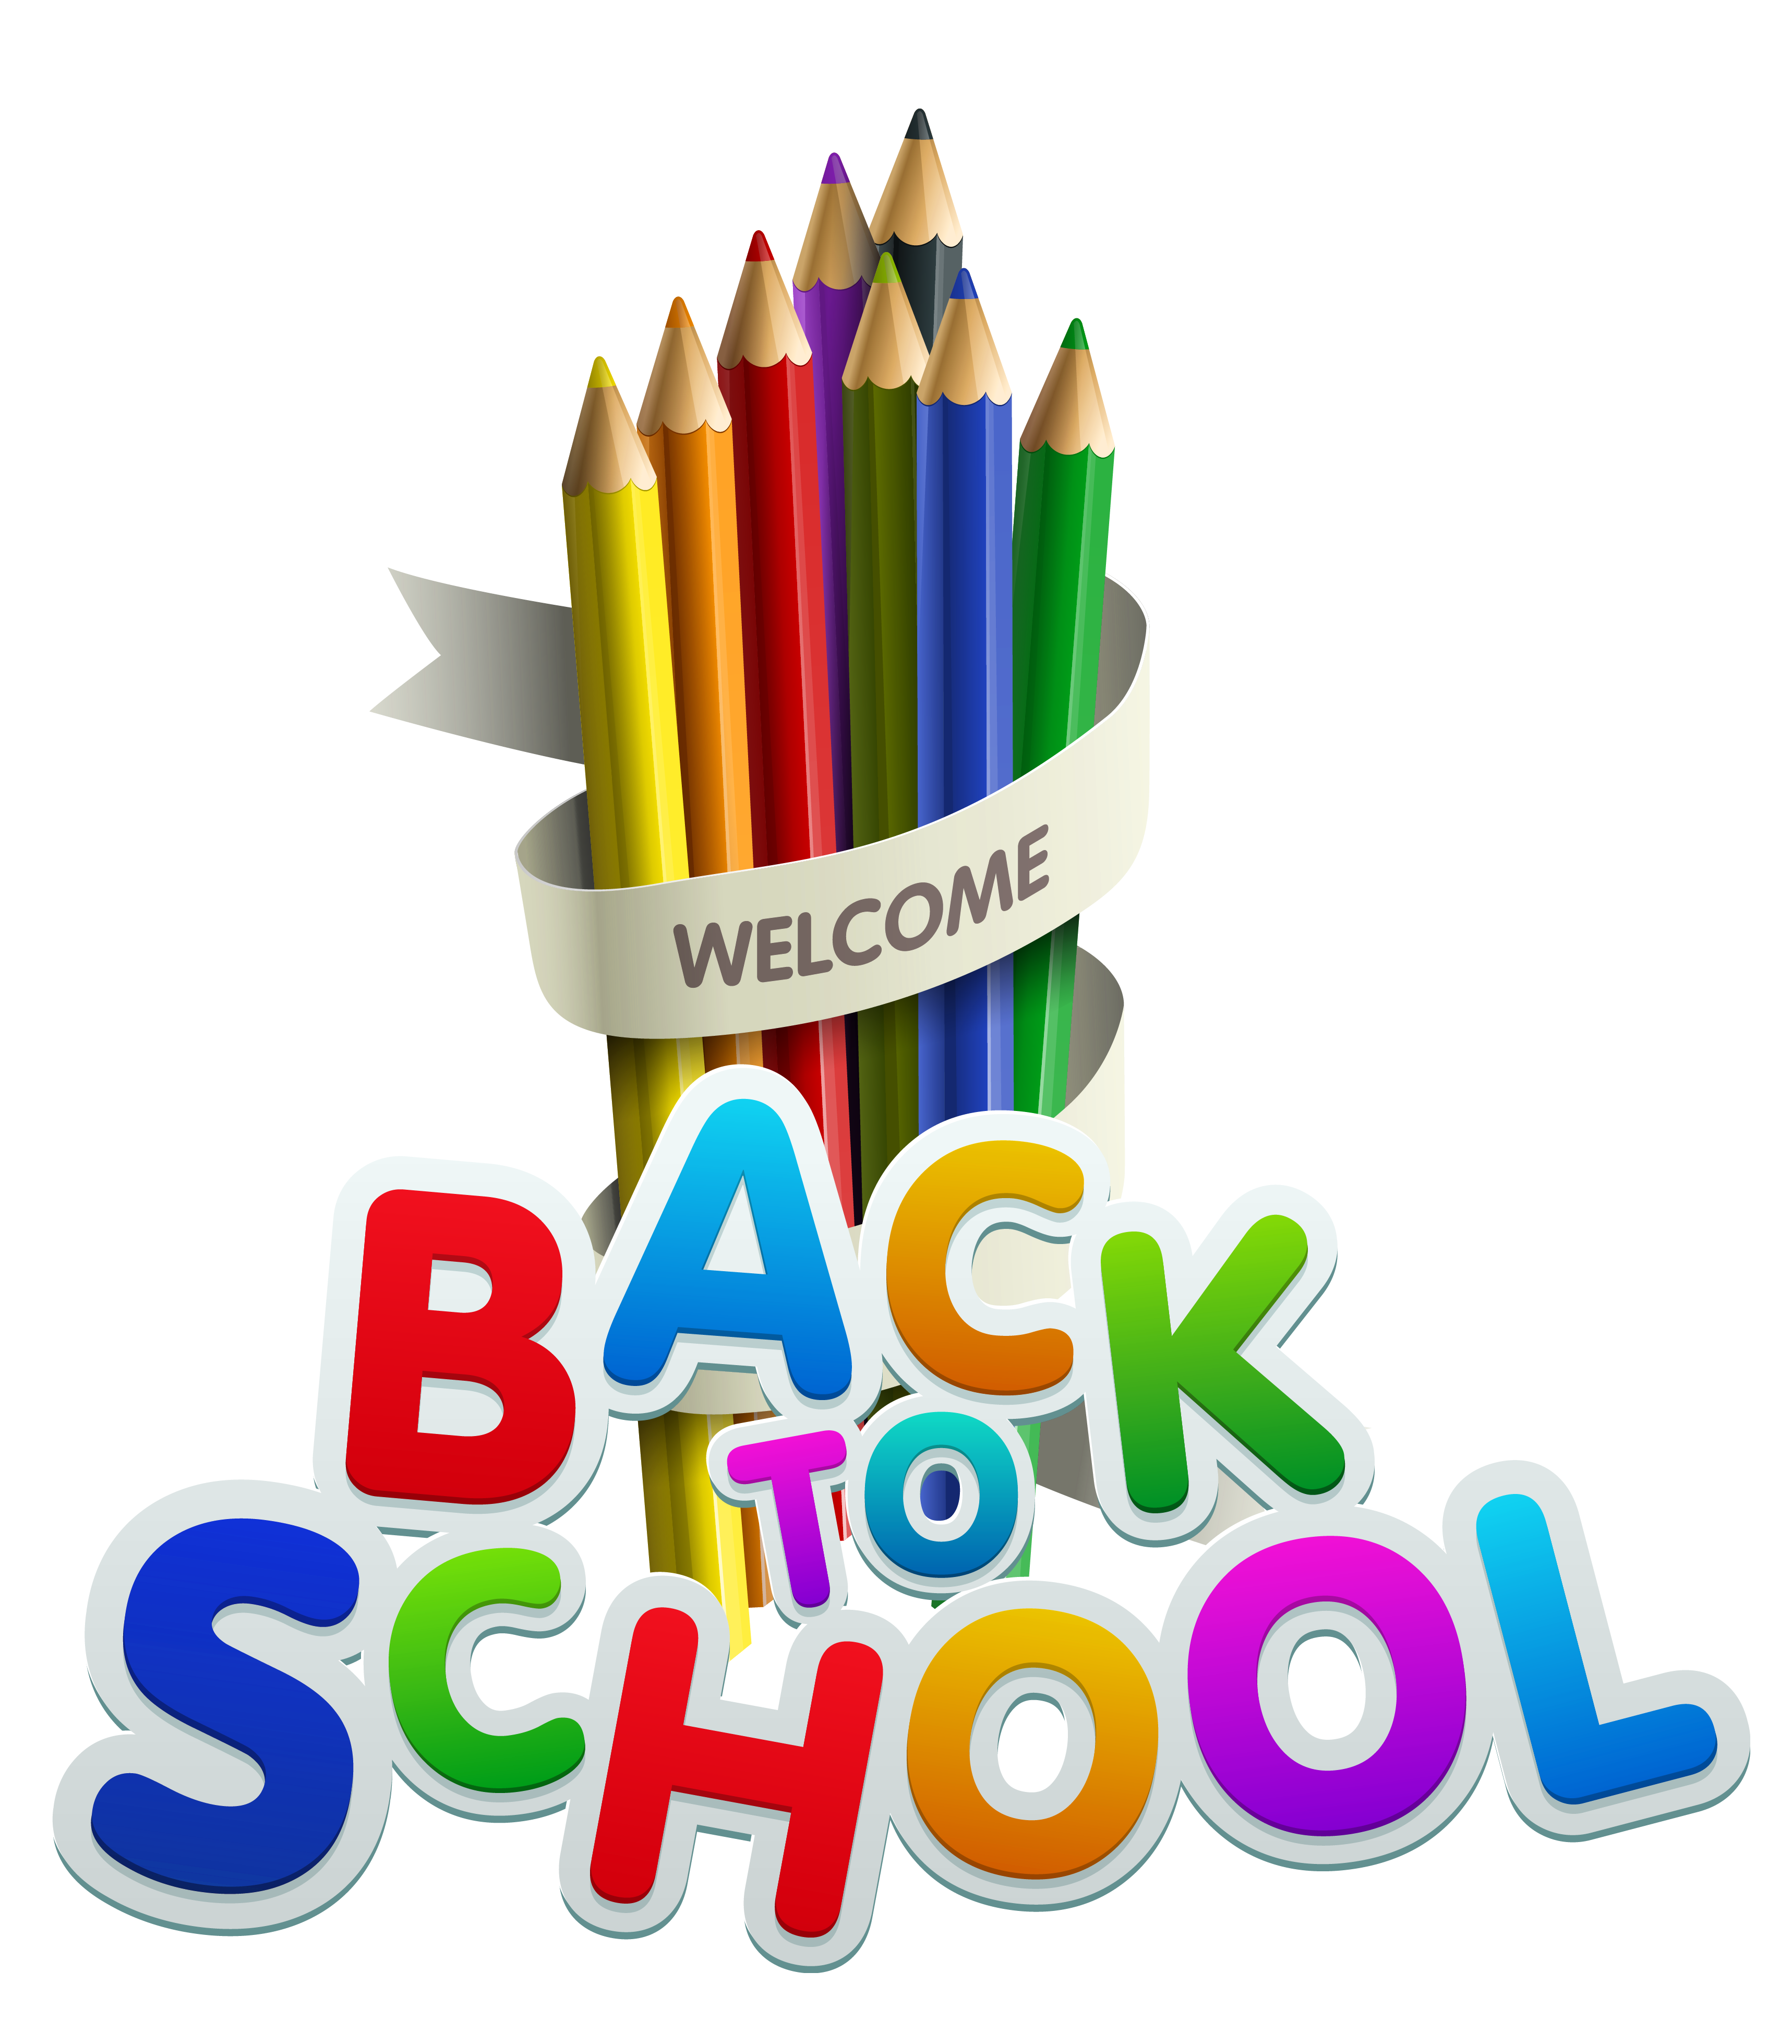 Welcome back school clipart image black and white welcome-back-to-school-color-pencils-clipart | welcome to mcbride annex image black and white